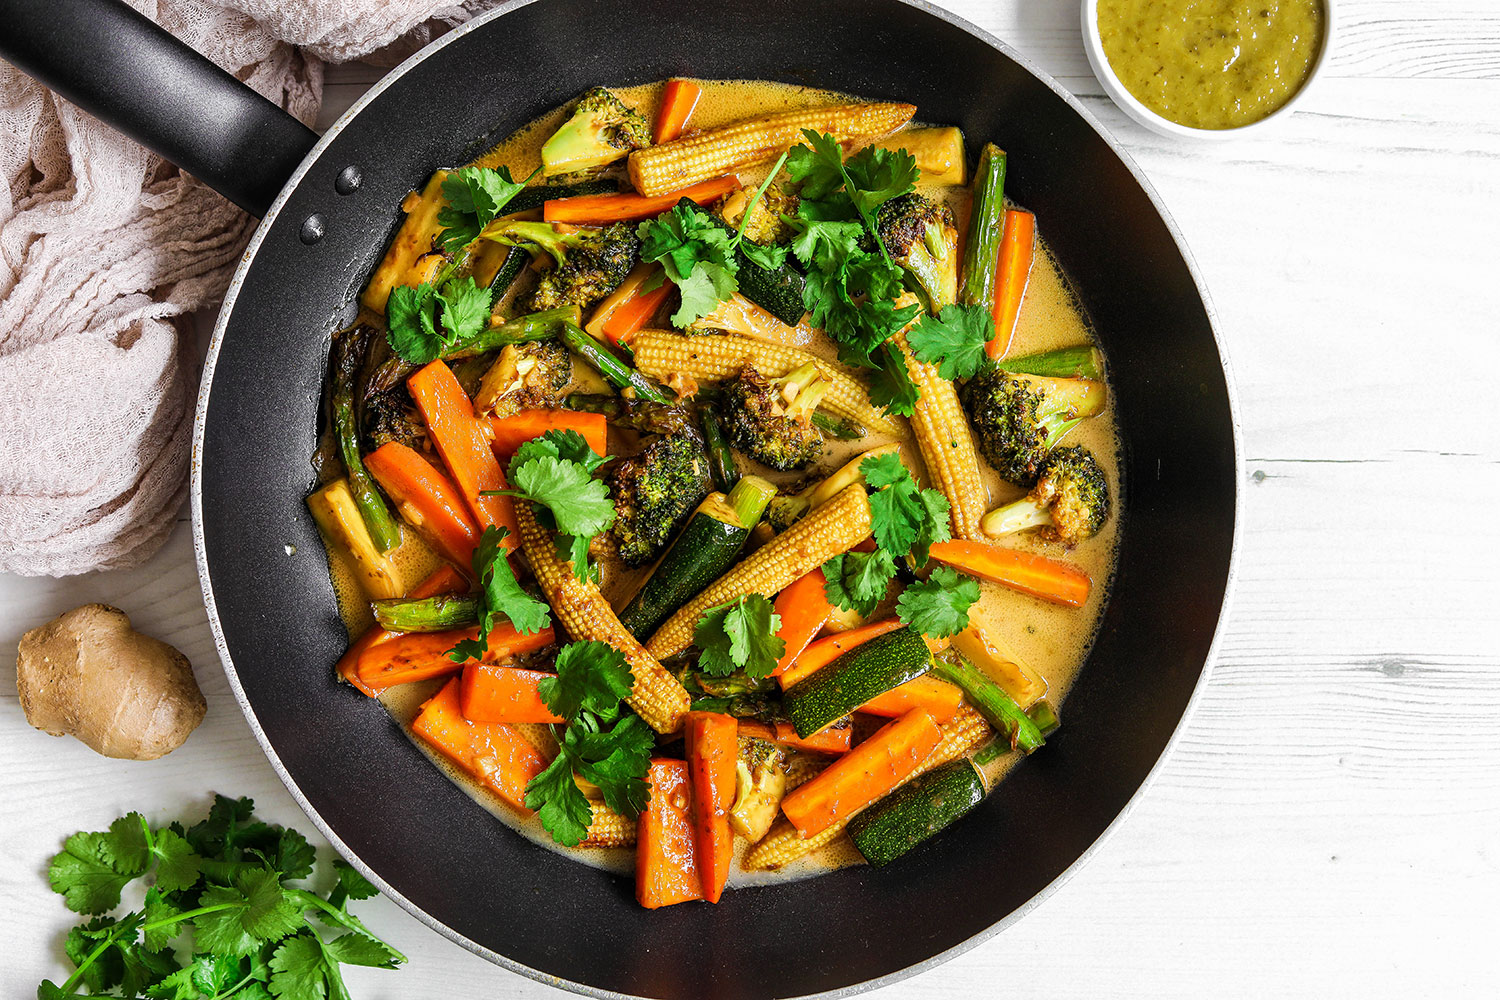 Tefal Actifry Green Curry with Crunchy Vegetables